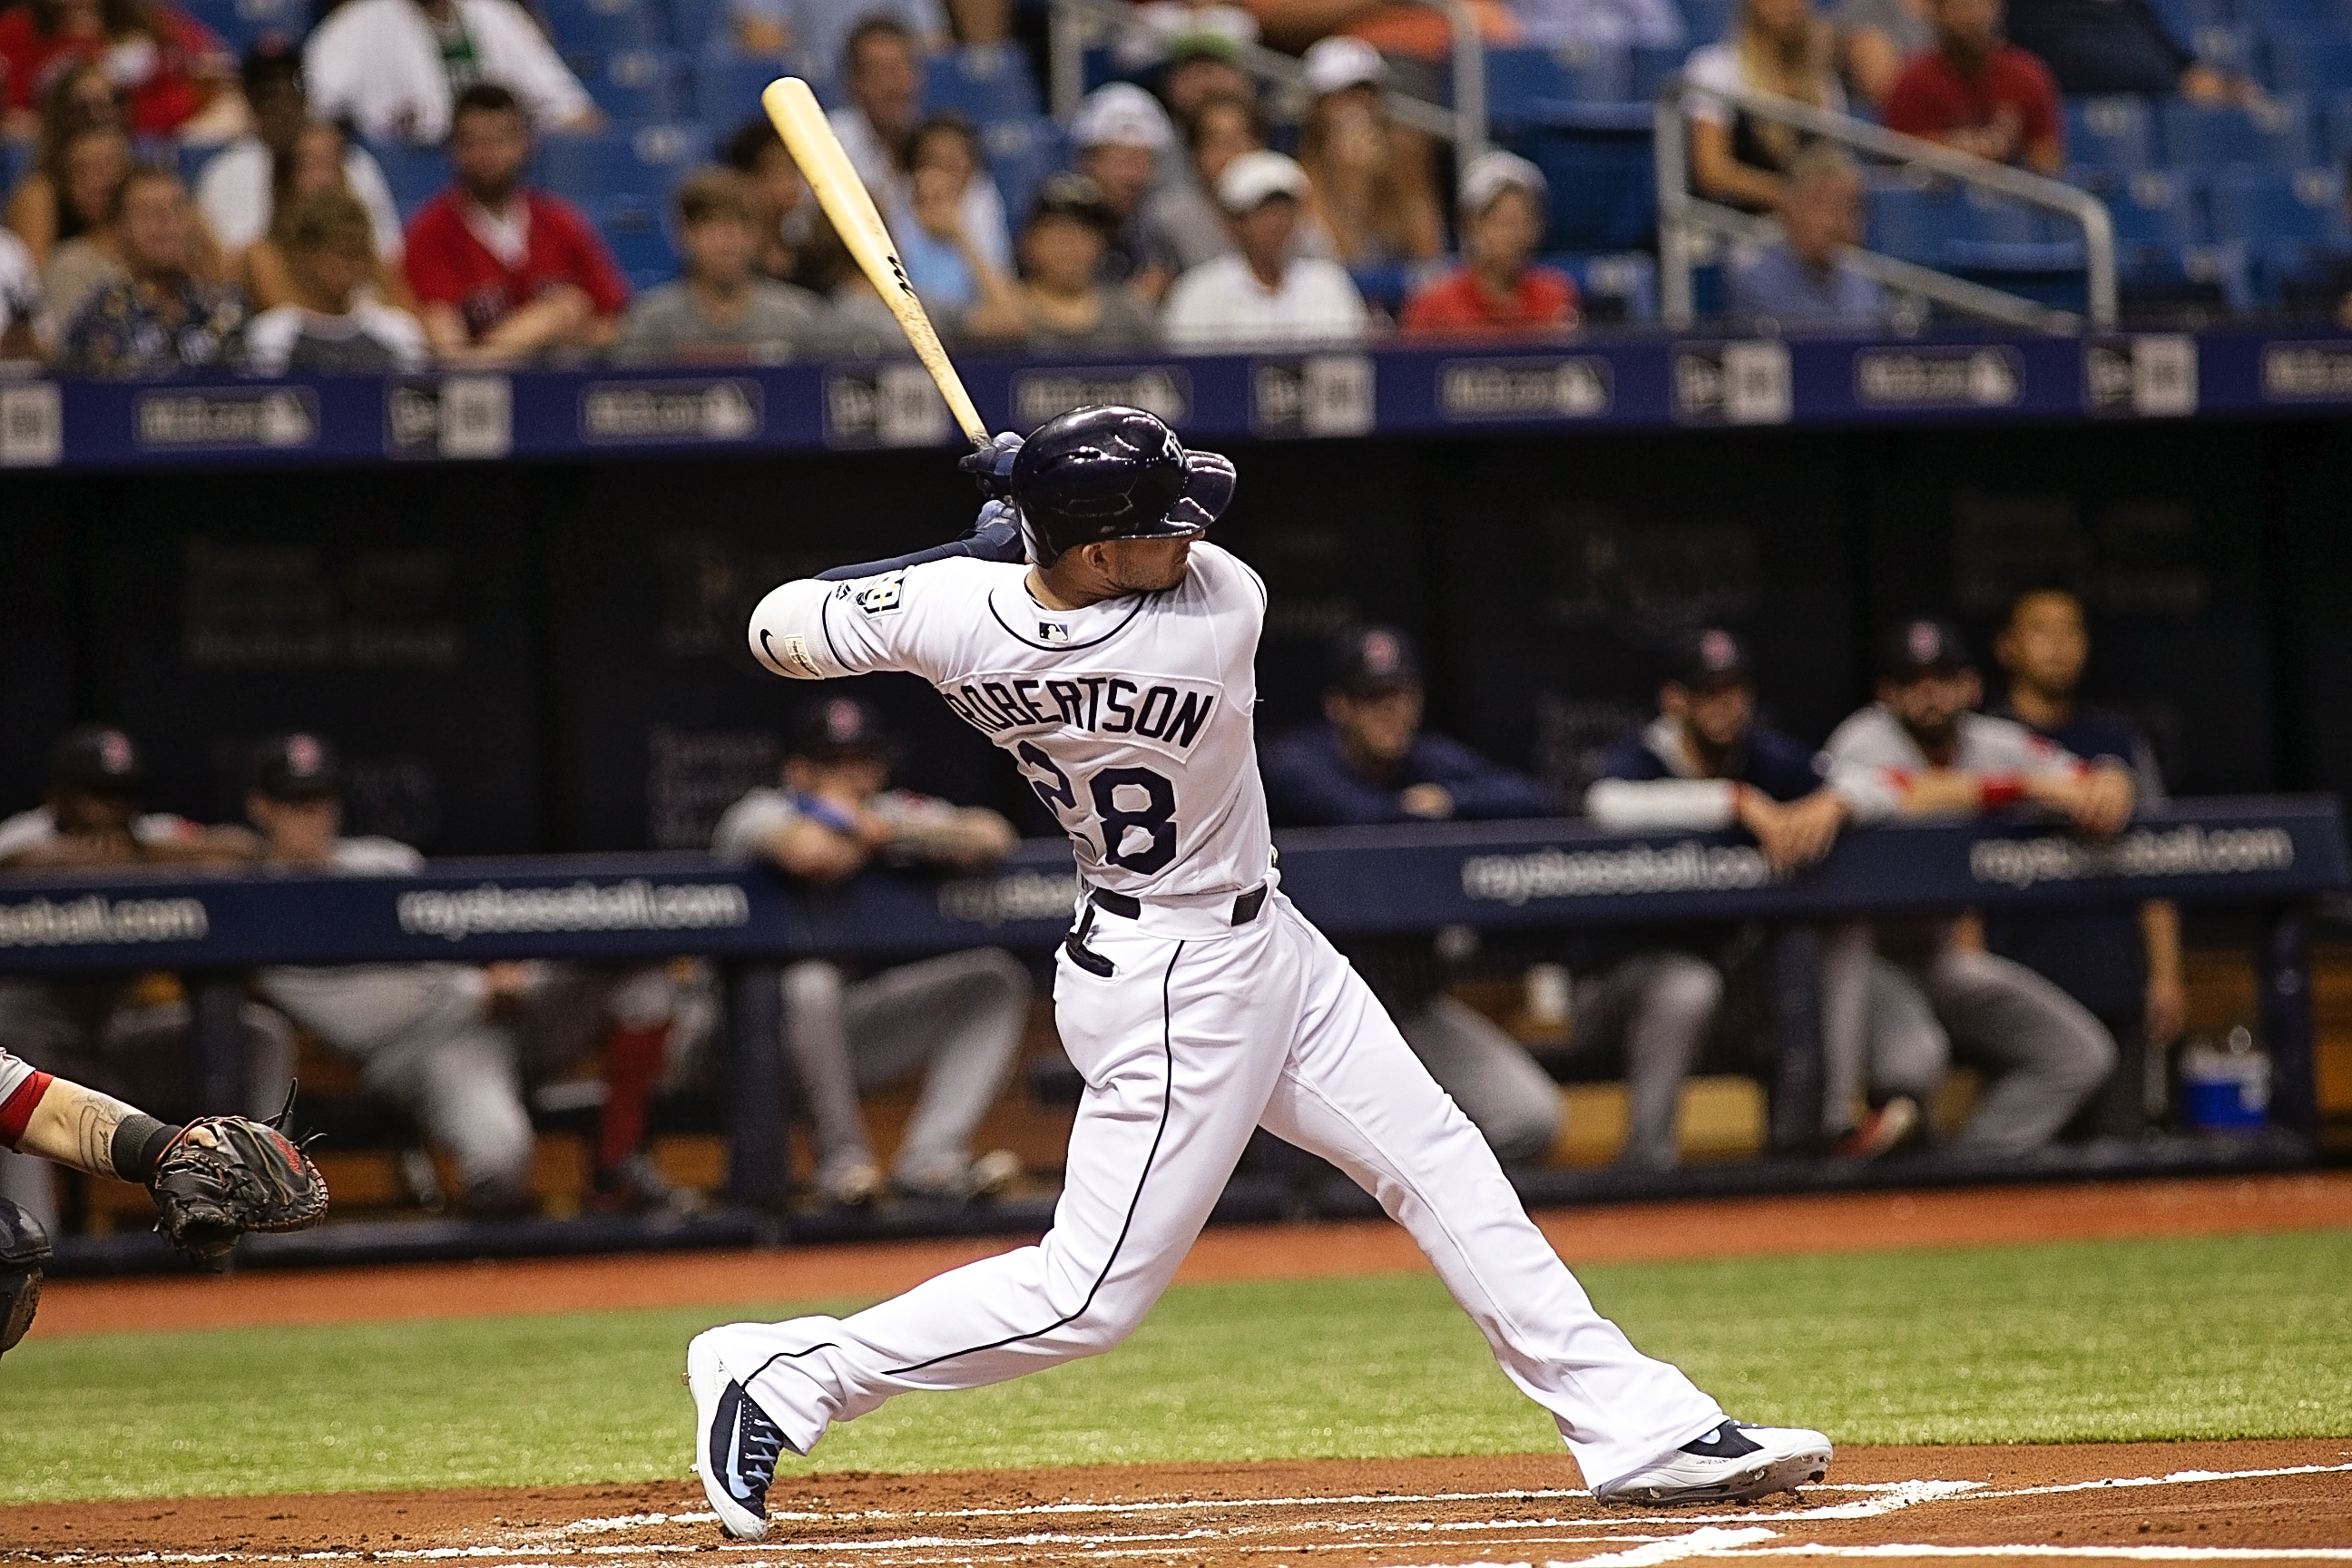 Robertson had two hits for the Rays./CARMEN MANDATO